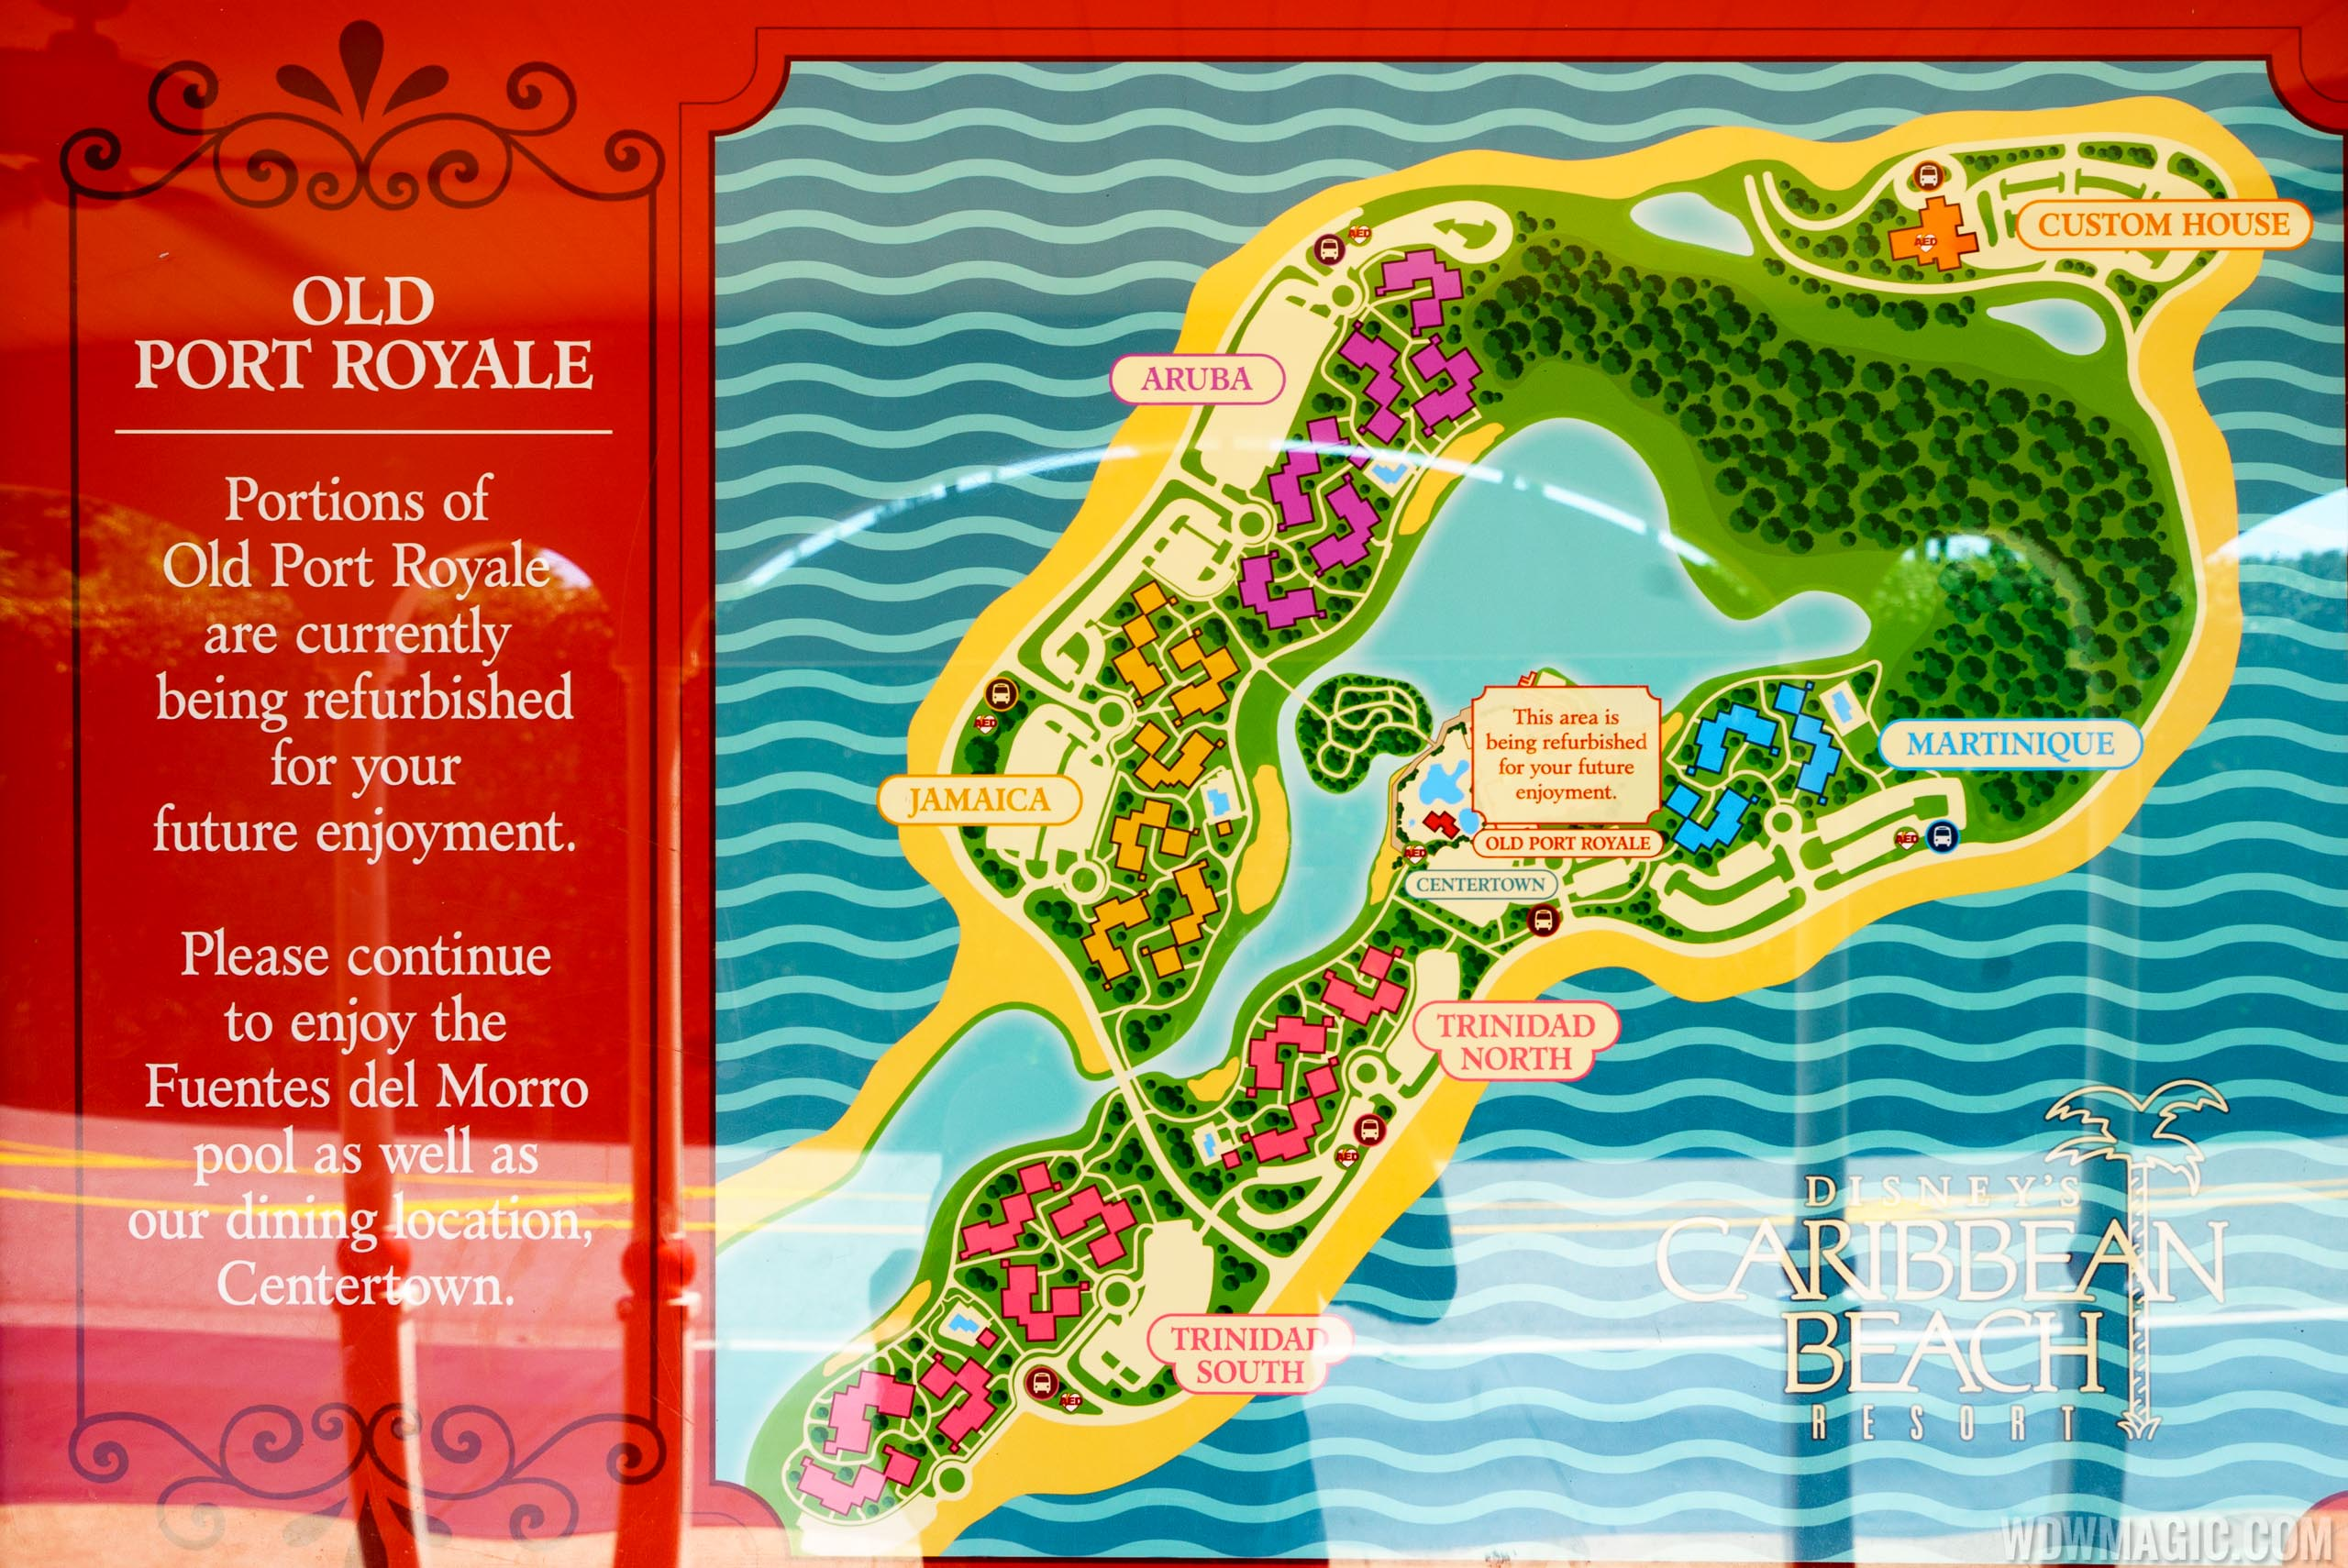 Old Port Royale closed and temporary dining at Disneys Caribbean